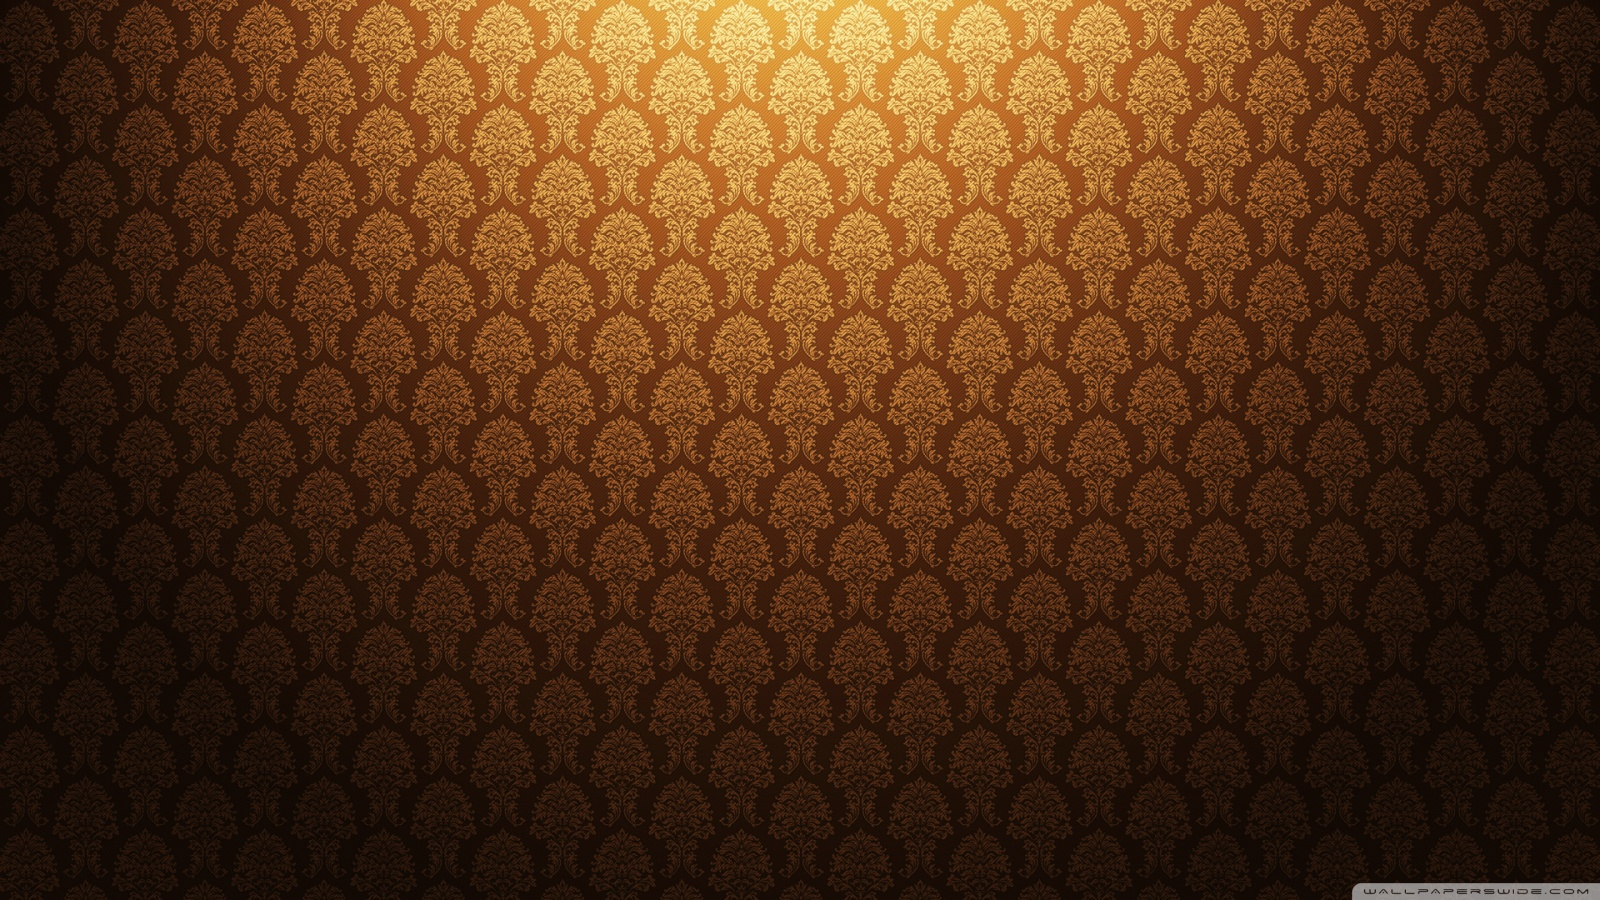 Download Hd Gold Wallpaper Gallery